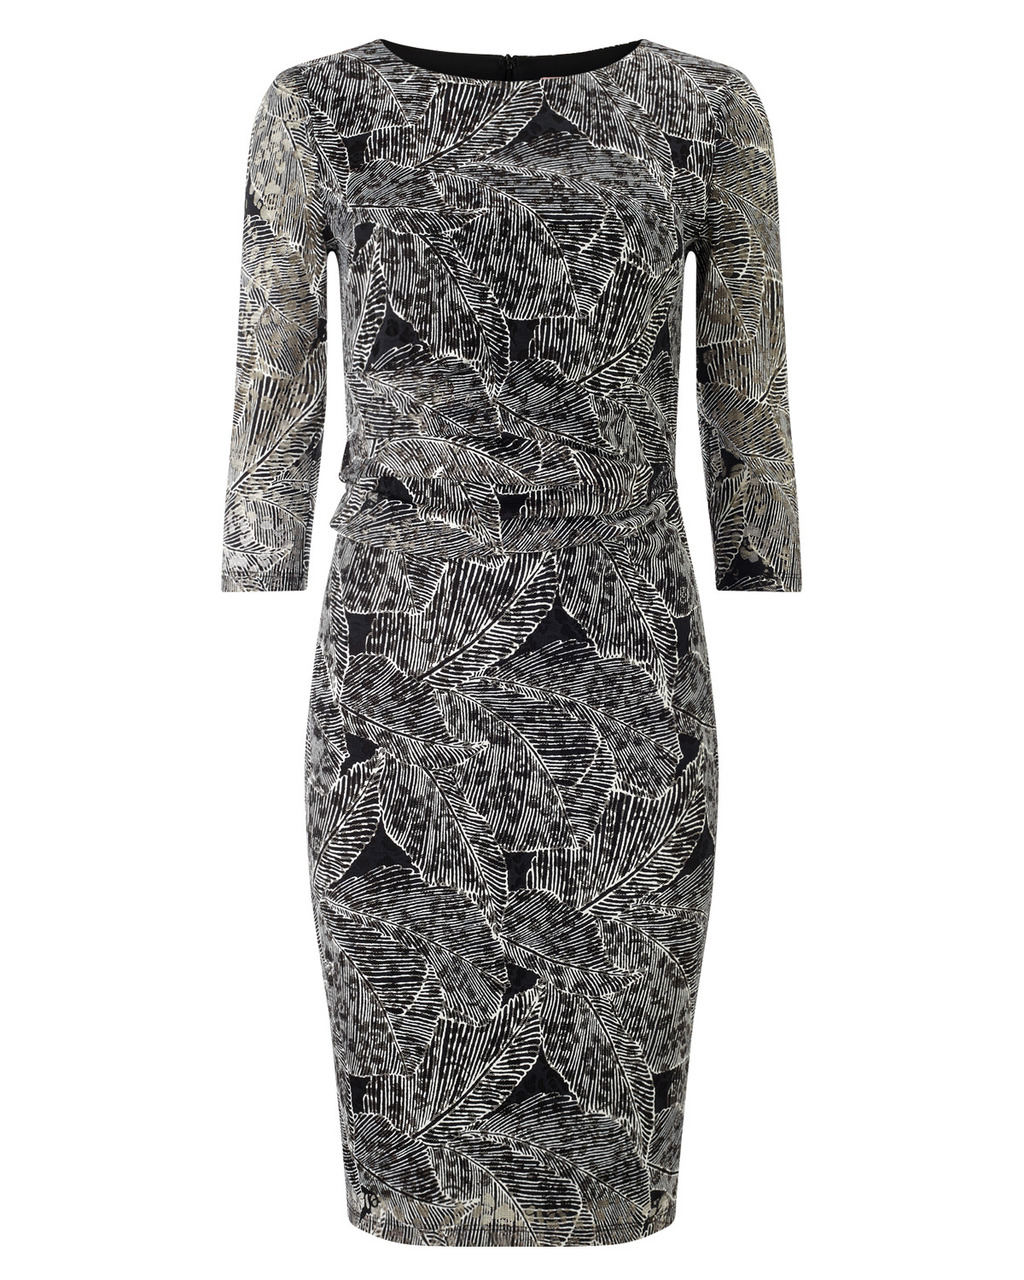 Leaf Print Lace Dress - style: shift; secondary colour: mid grey; predominant colour: black; occasions: evening, occasion; length: just above the knee; fit: body skimming; fibres: cotton - mix; neckline: crew; sleeve length: 3/4 length; sleeve style: standard; pattern type: fabric; pattern size: standard; pattern: patterned/print; texture group: jersey - stretchy/drapey; season: s/s 2016